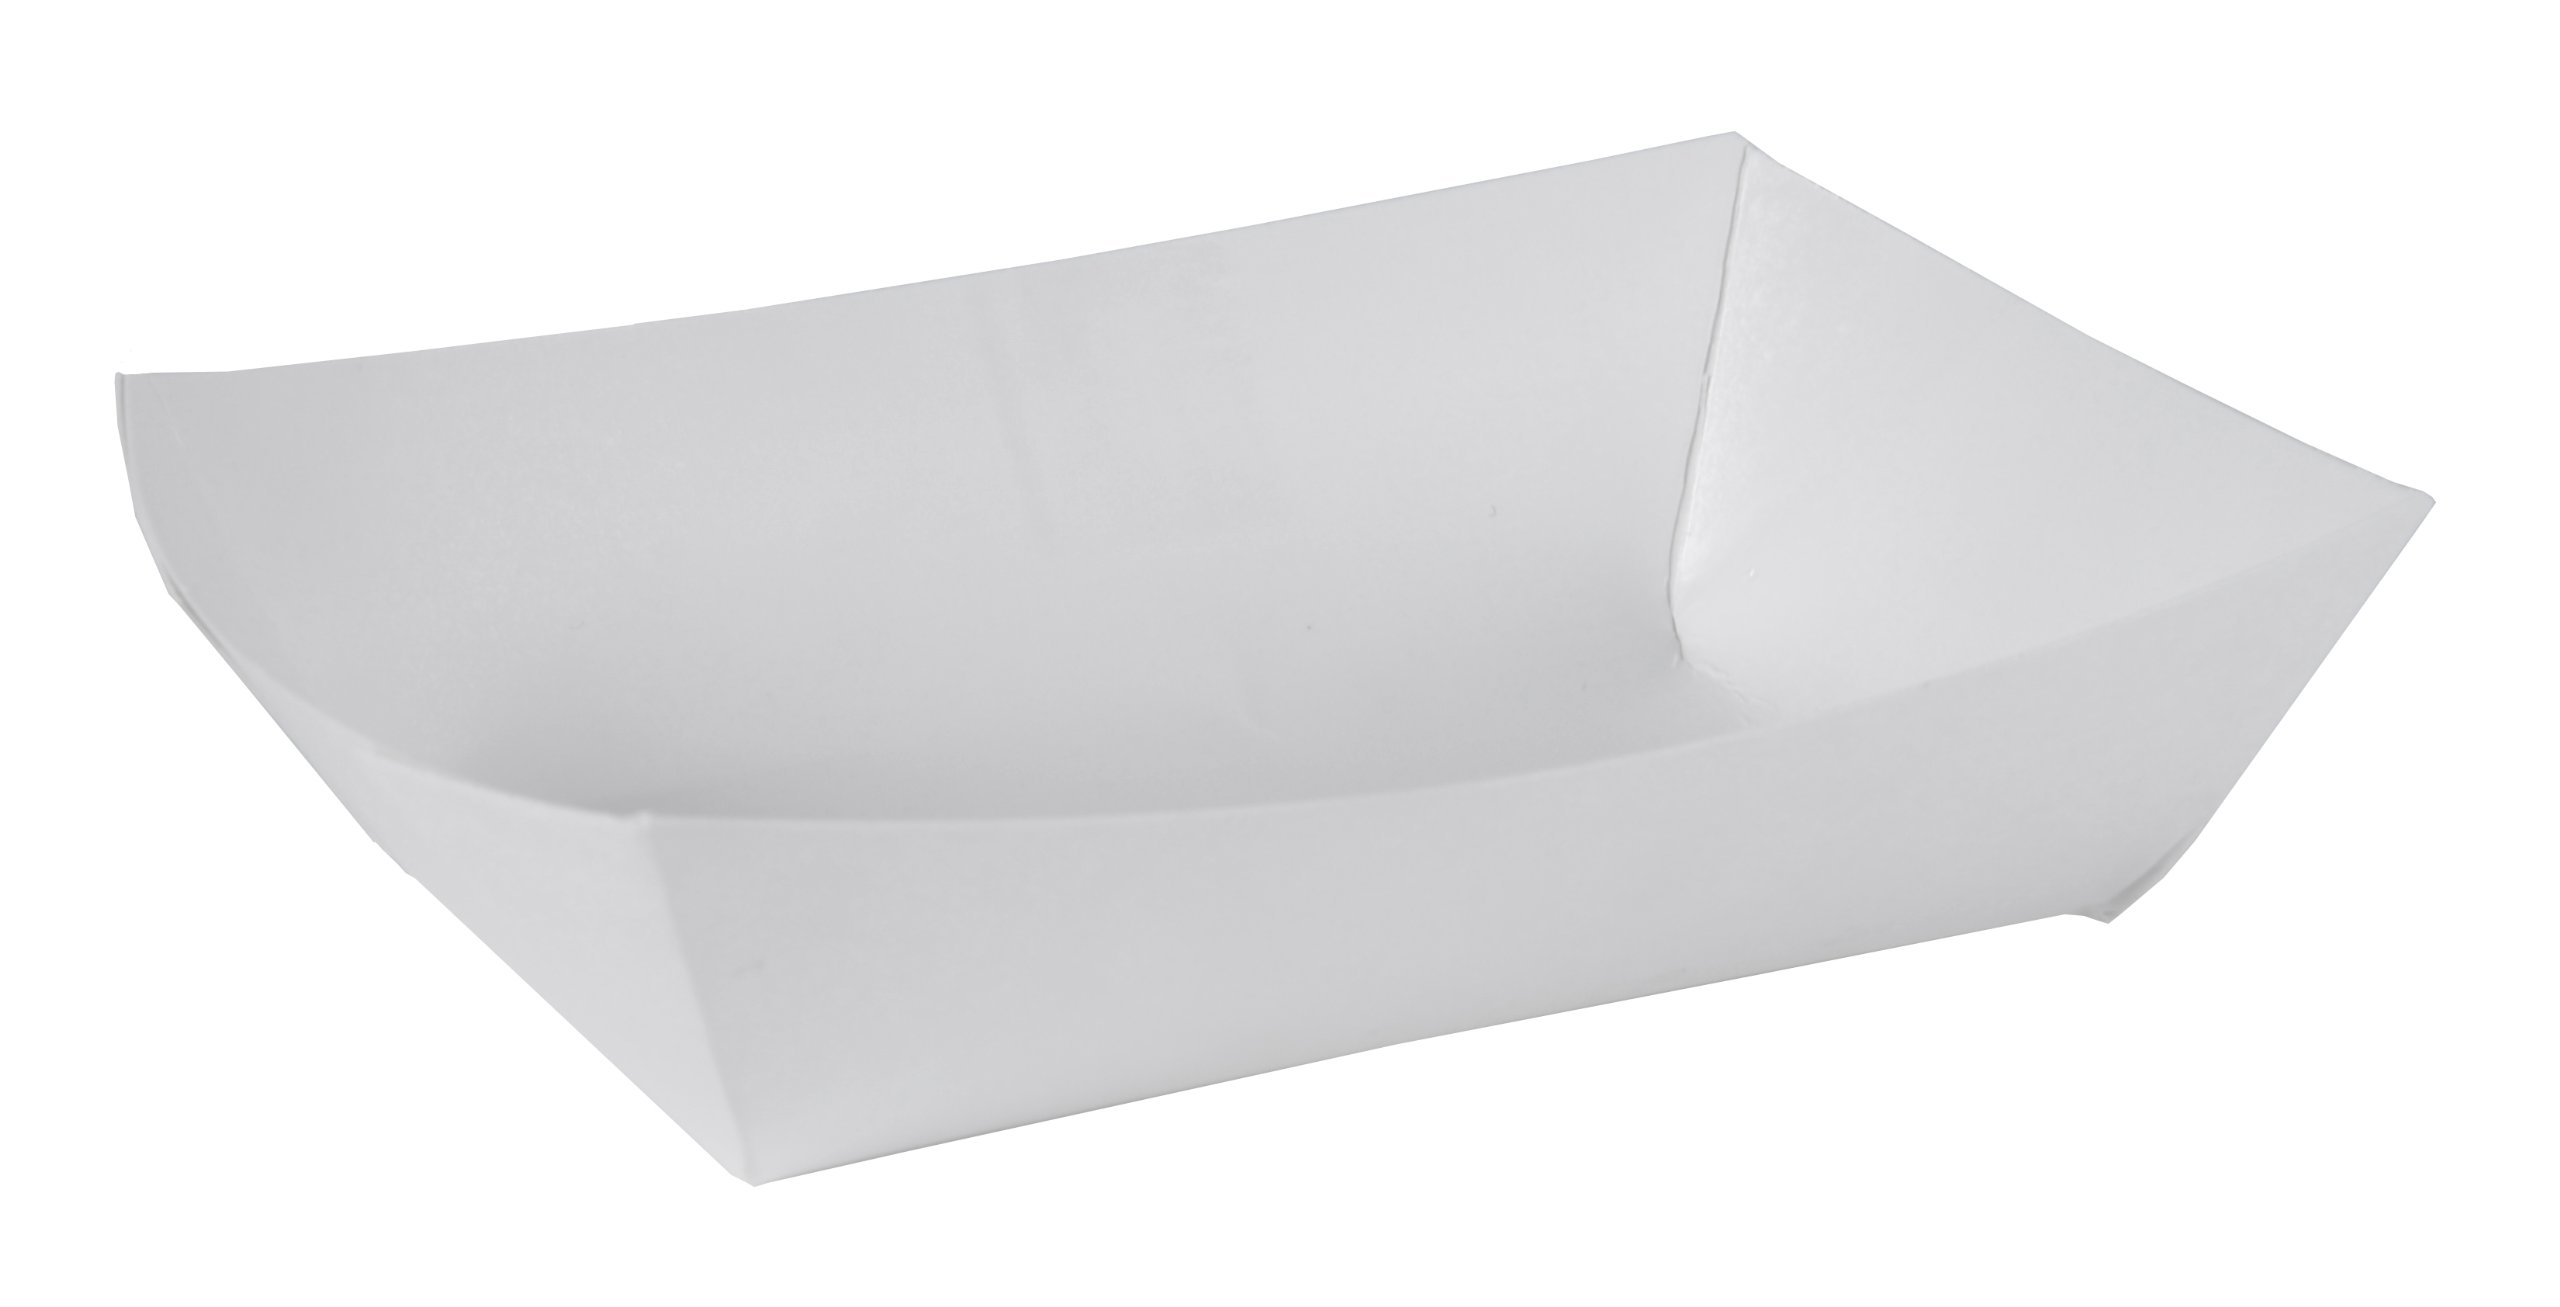 Southern Champion Tray 0552#50 Paperboard Food Tray/Boat / Bowl, 1/2 lb Capacity, White (Pack of 1000)